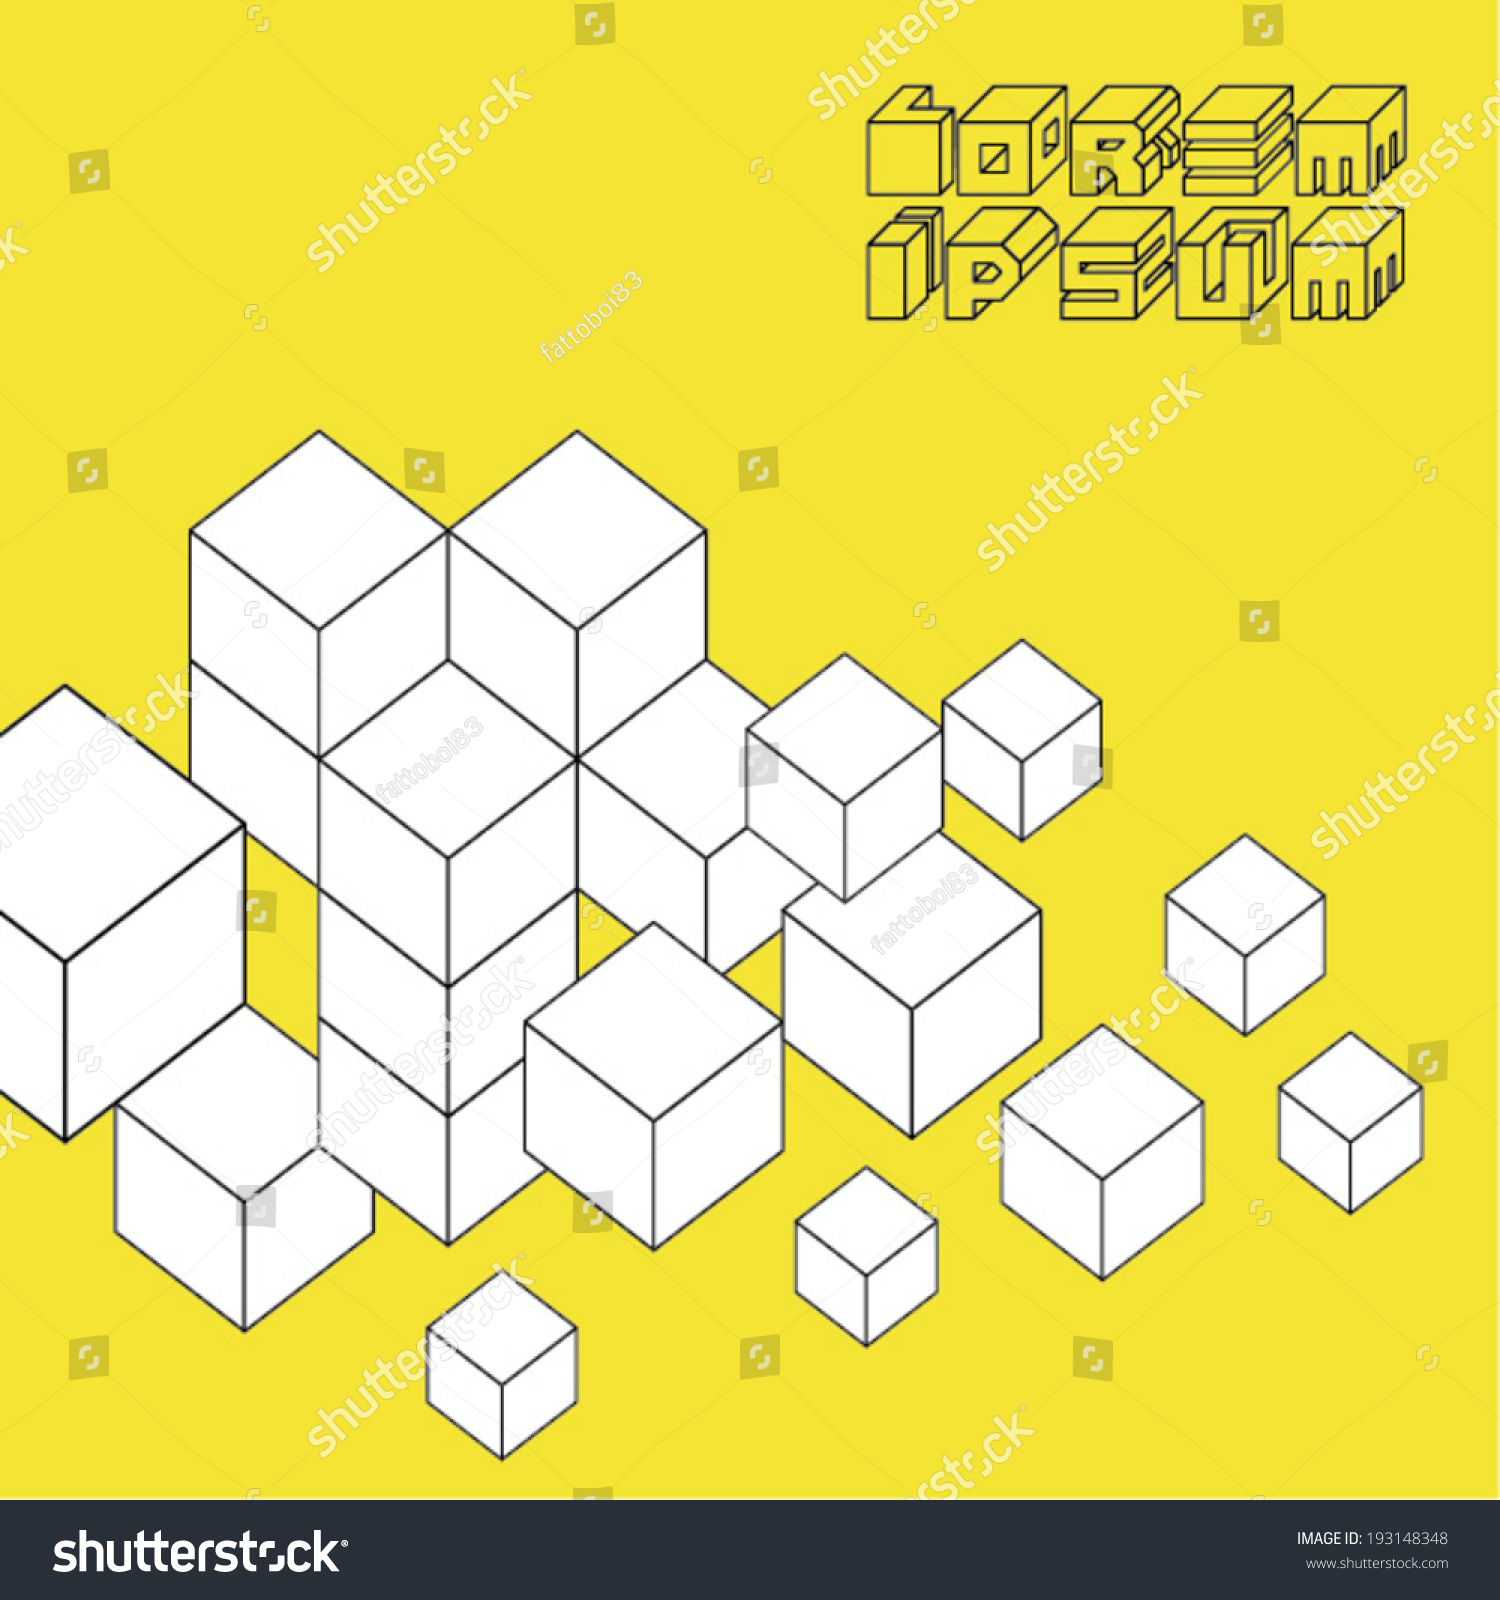 3 D Illusion Paper Cubes Template Stock Vector 193148348 - Shutterstock